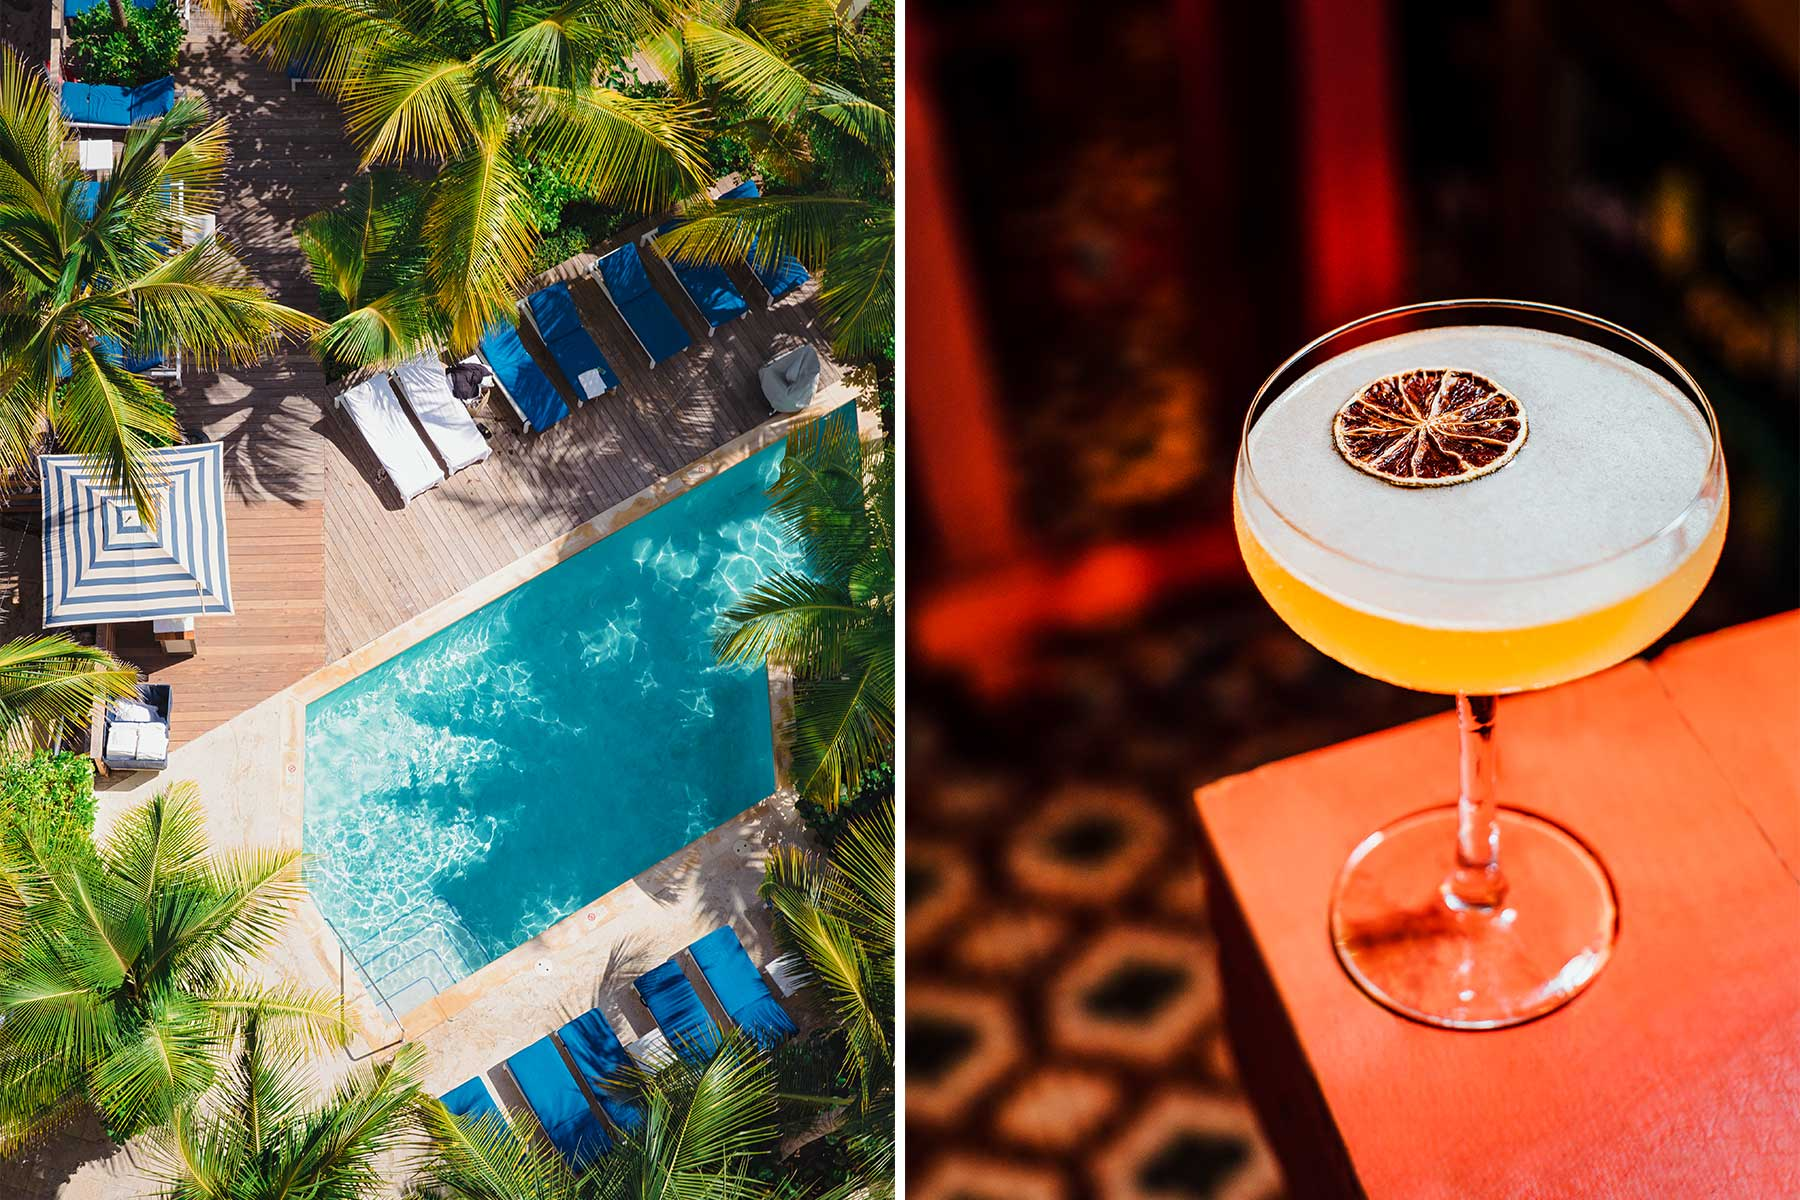 Two photos from Puerto Rico. One shows the pool at the Condado Vanderbily hotel, and the other shows a cocktail at La Factoria bar